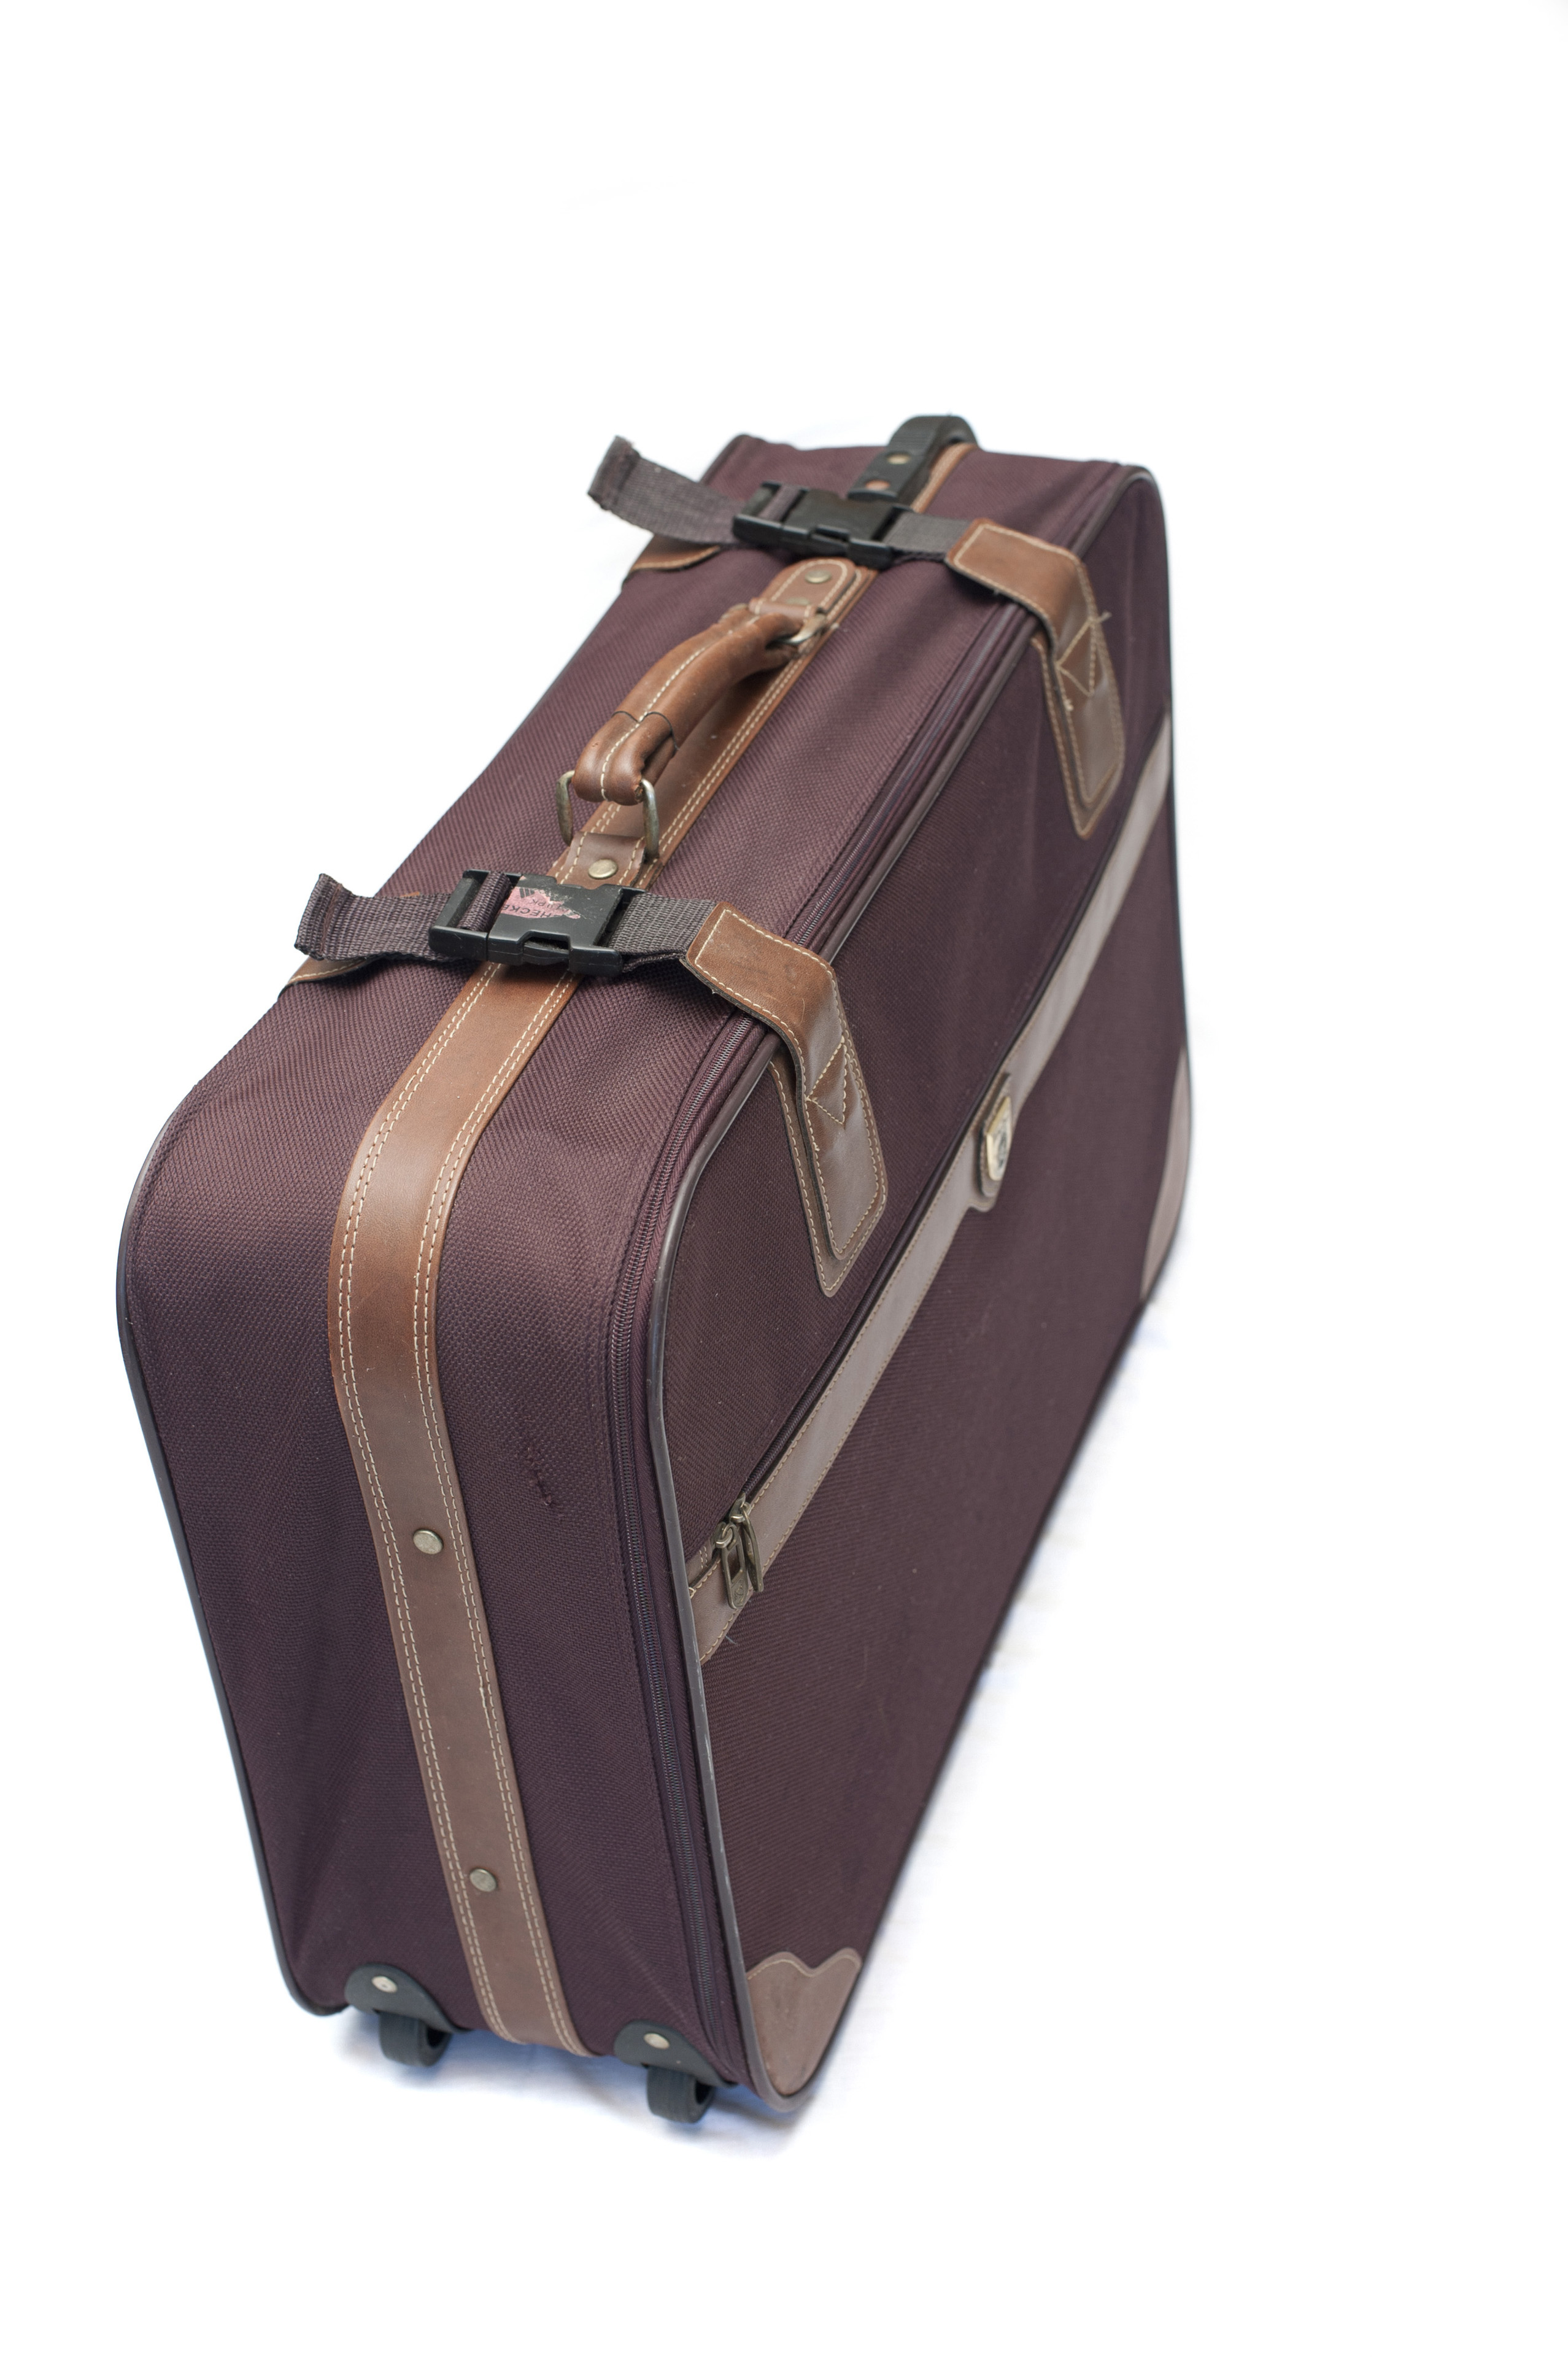 Unmarked brown suitcase, luggage or baggage, with straps and wheels conceptual of travel and vacations on white